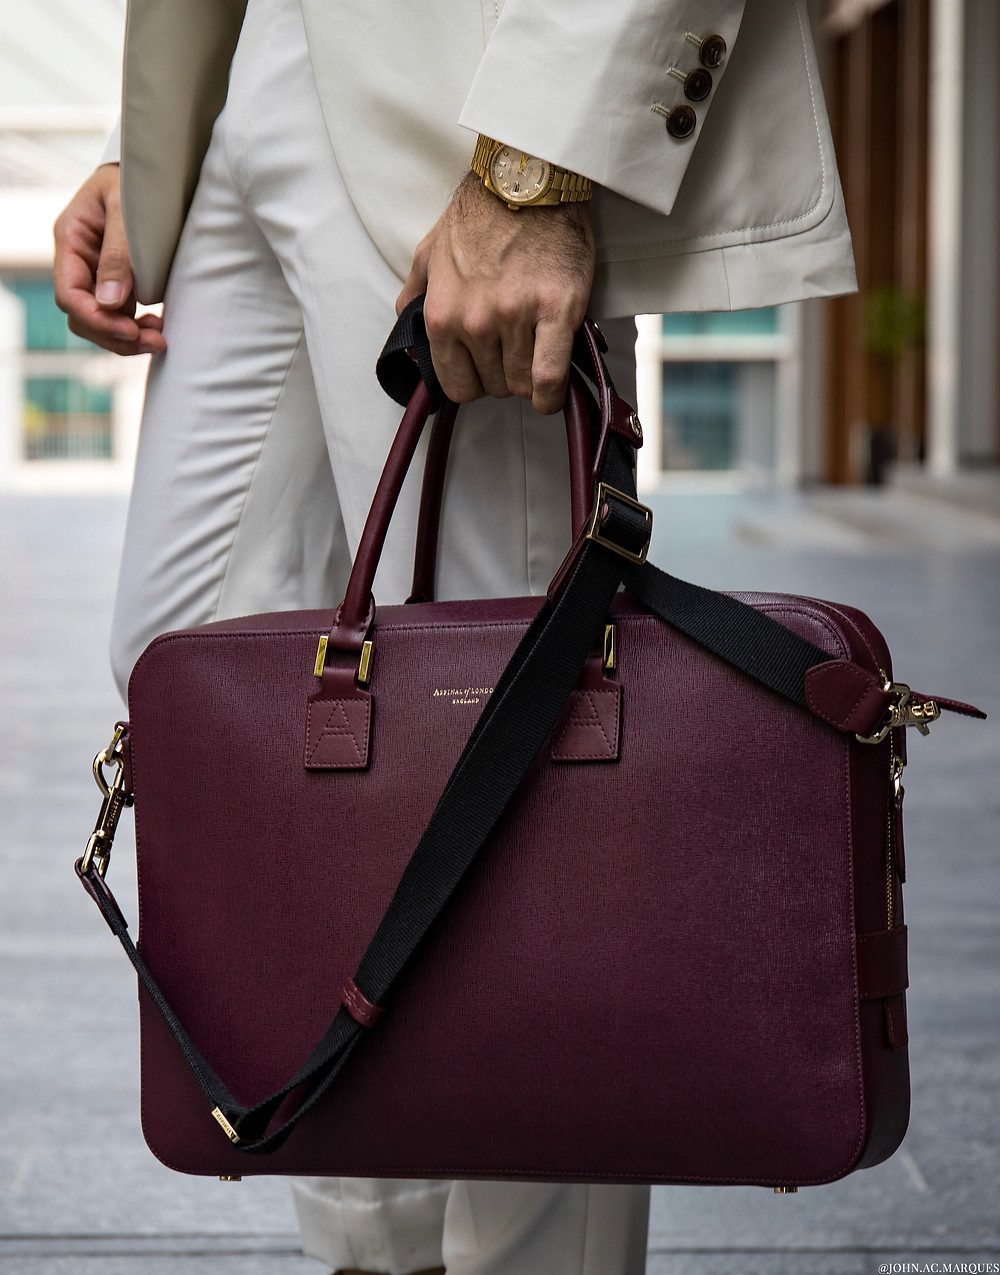 Detail Shot: Gold & Diamond Rolex DayDate and Aspinal of London burgundy leather laptop briefcase.